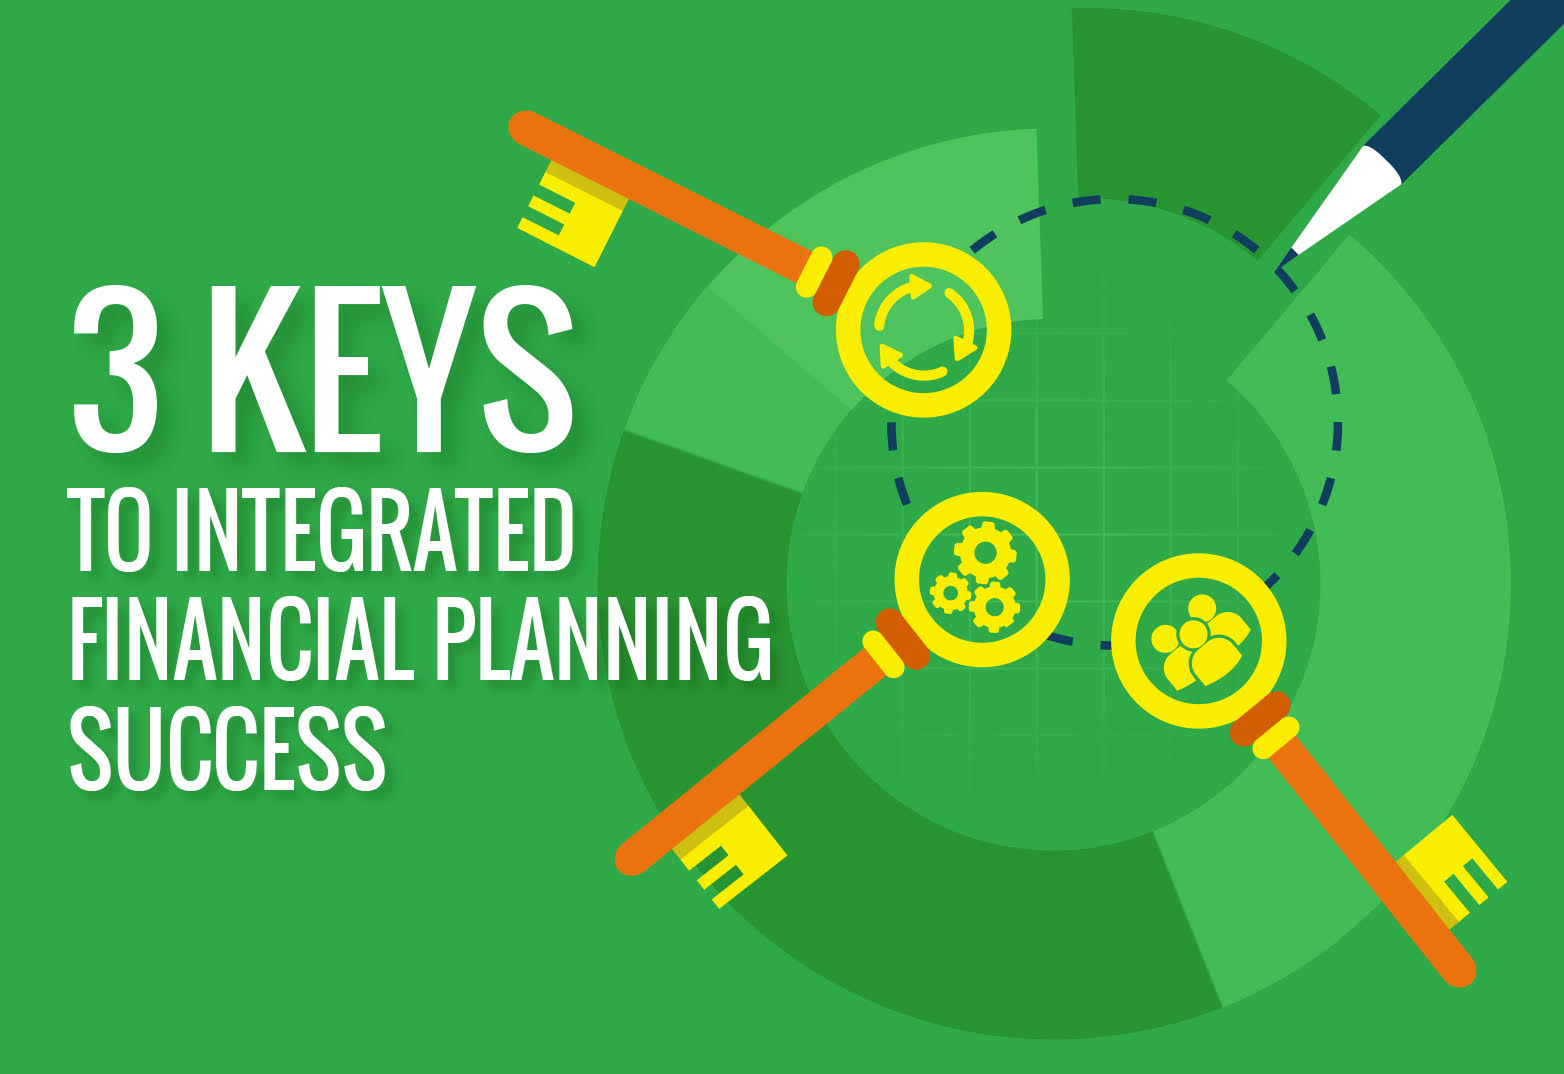 3 keys to integrated financial planning success